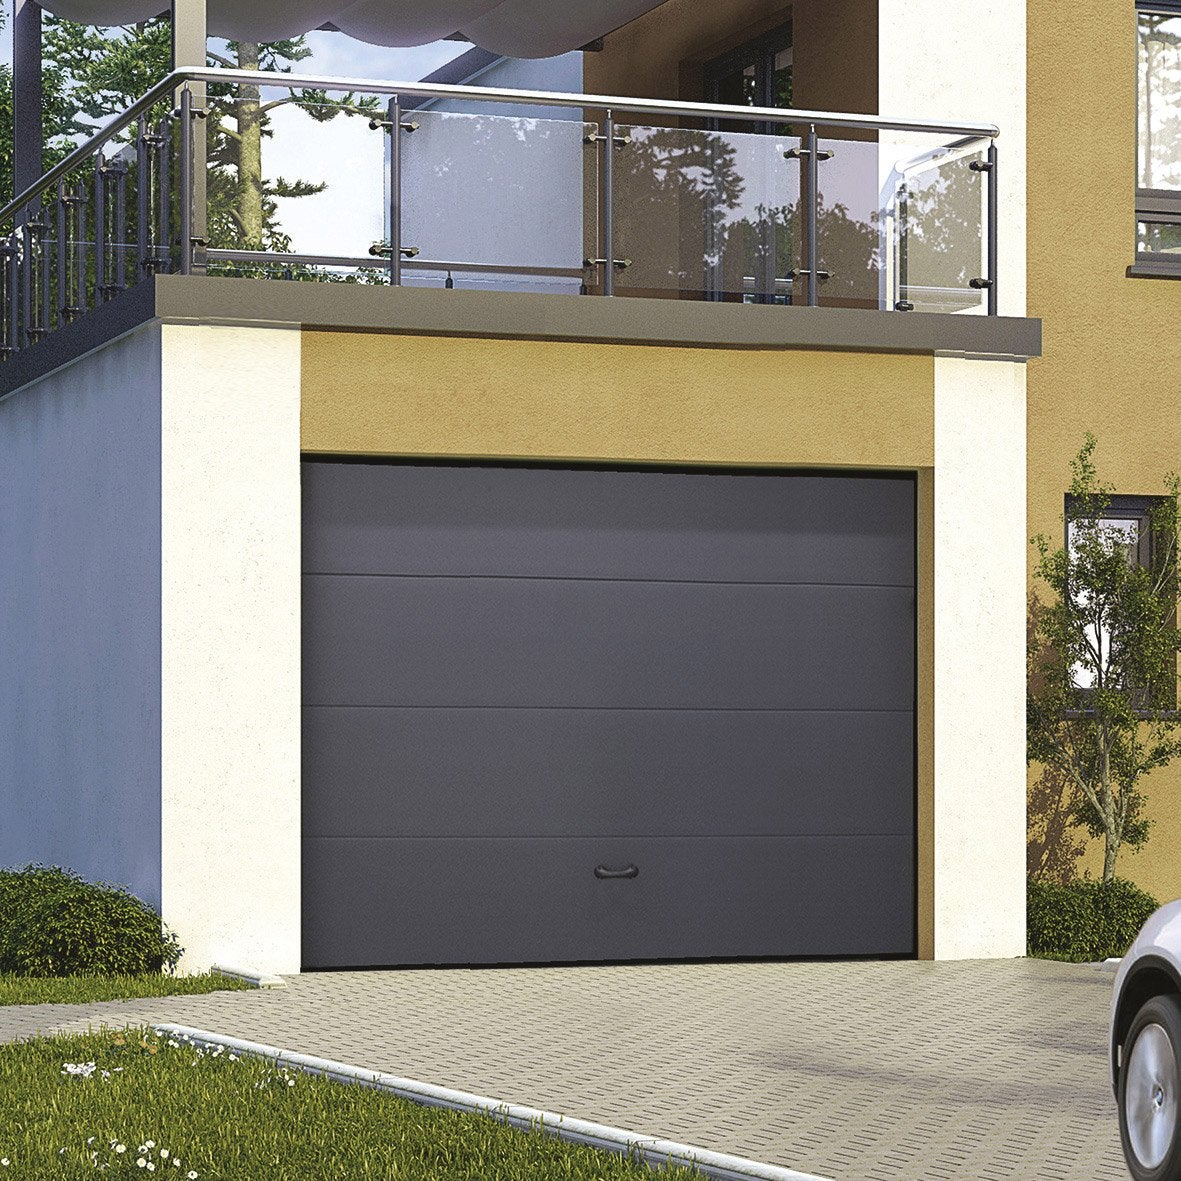 Porte de garage sectionnelle excellence x cm - Porte de garage sectionnelle 300 x 200 ...